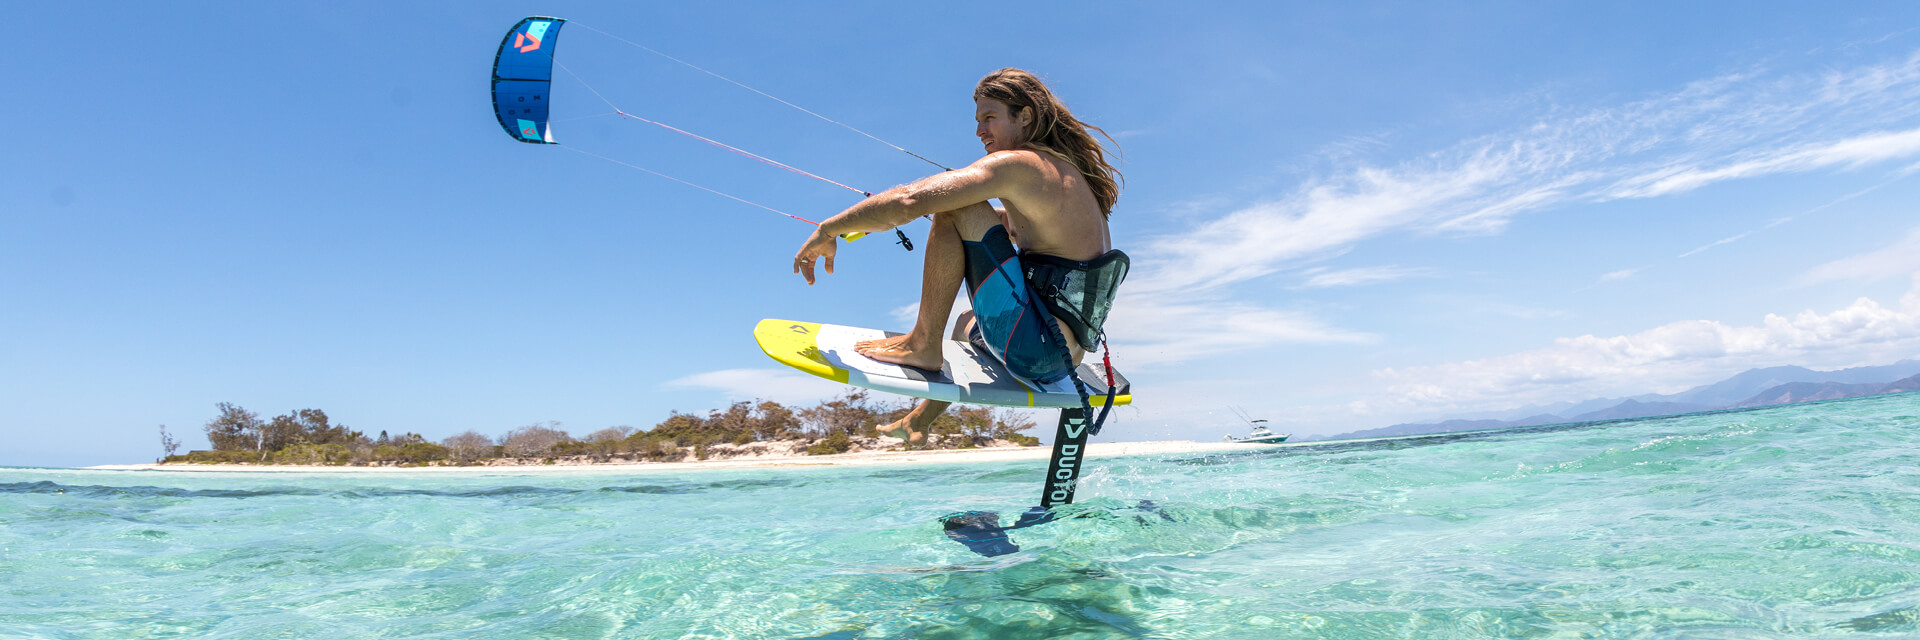 Duotone Kiteboarding Foil Boards Overview